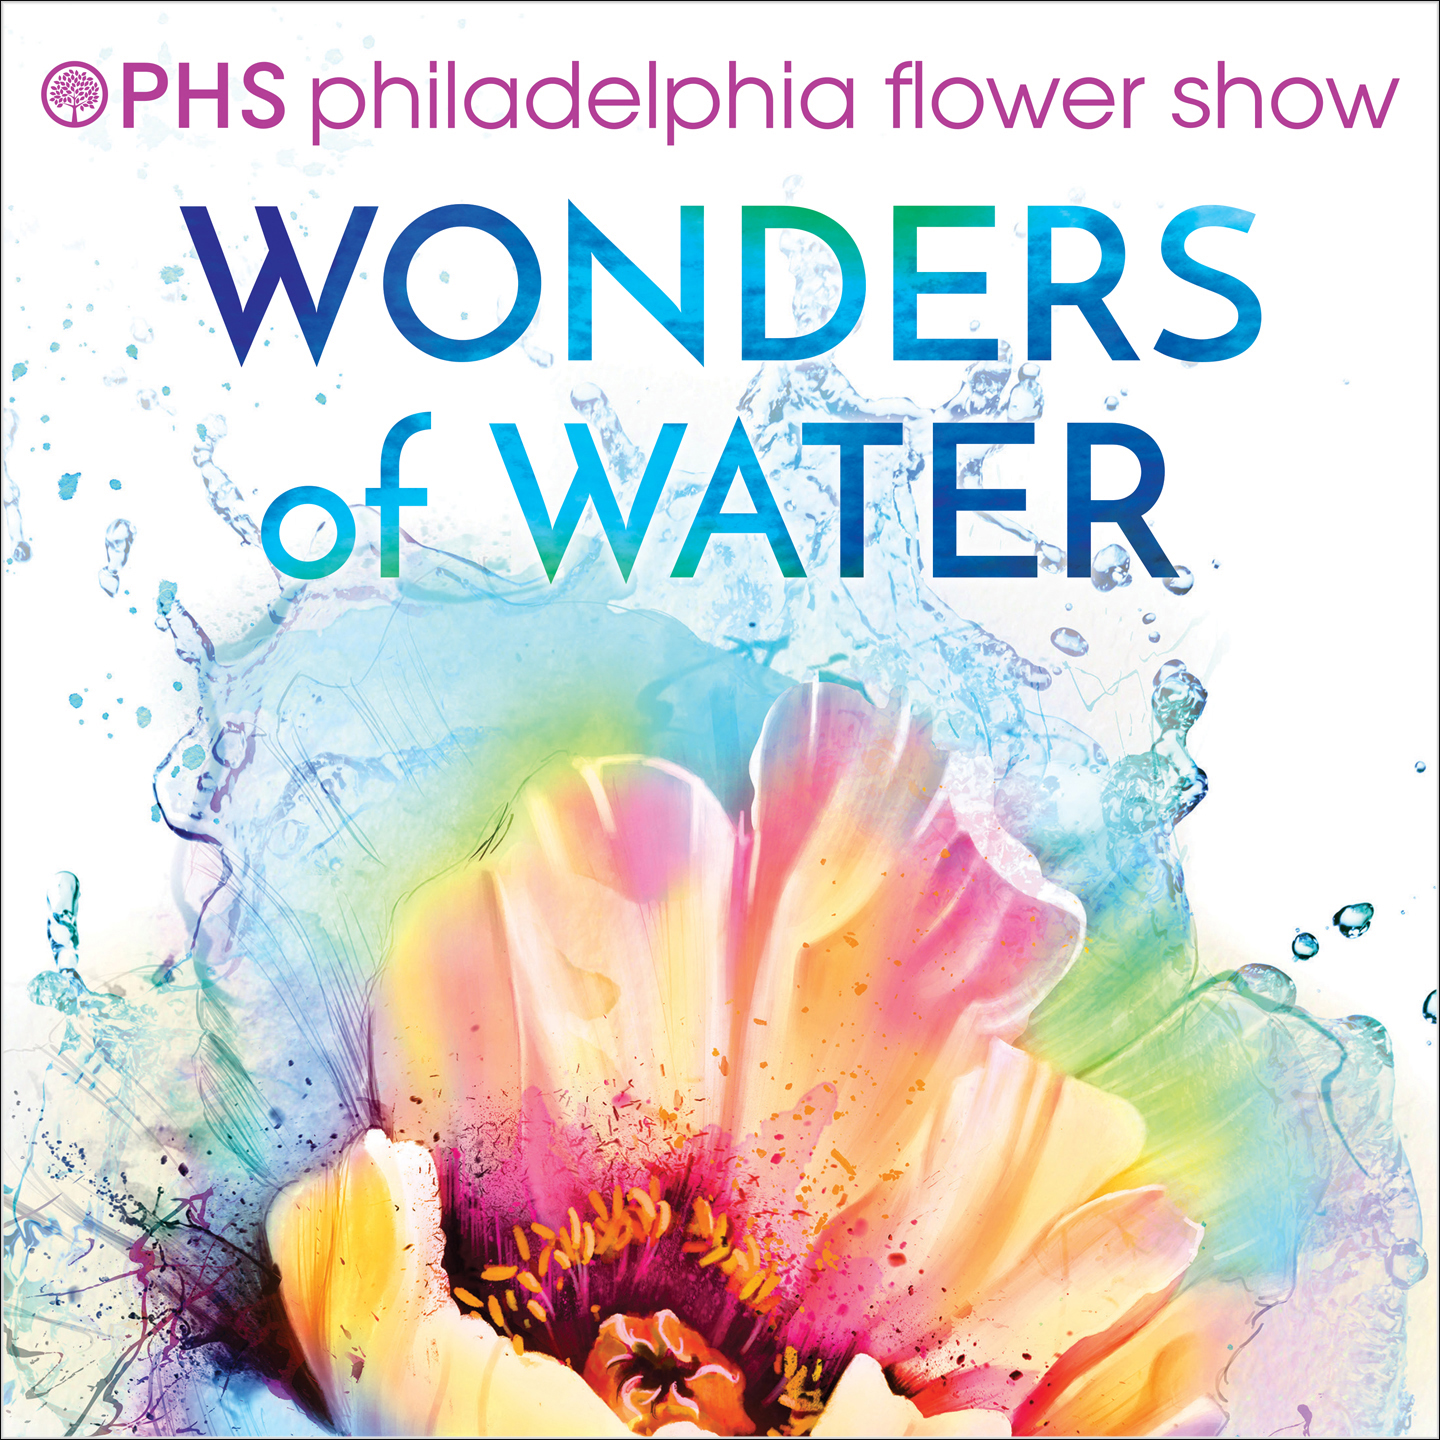 The poster design that was selected for the 2018 PHS Philadelphia Flower Show (Pennsylvania Horticultural Society's annual fundraising event).